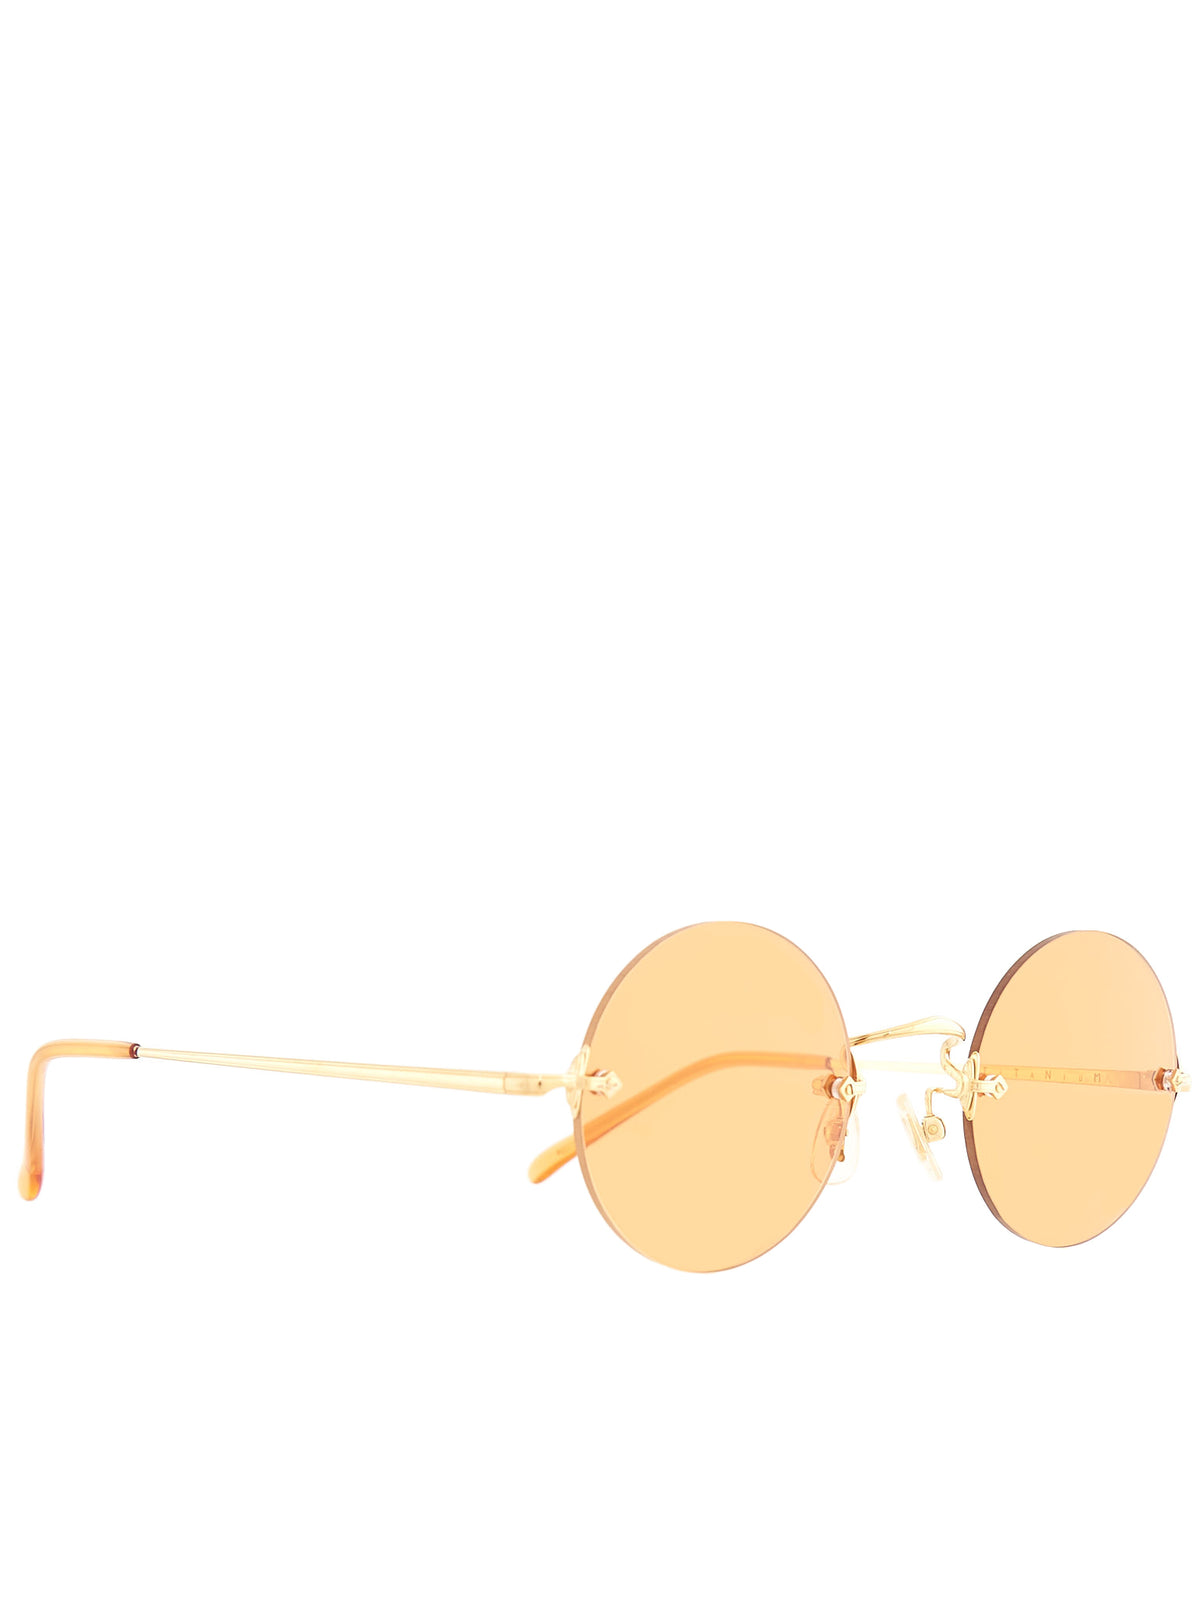 Anaaki Sunglasses (ANAAKI-M-GP-ROUND-BIG-ORANGE)